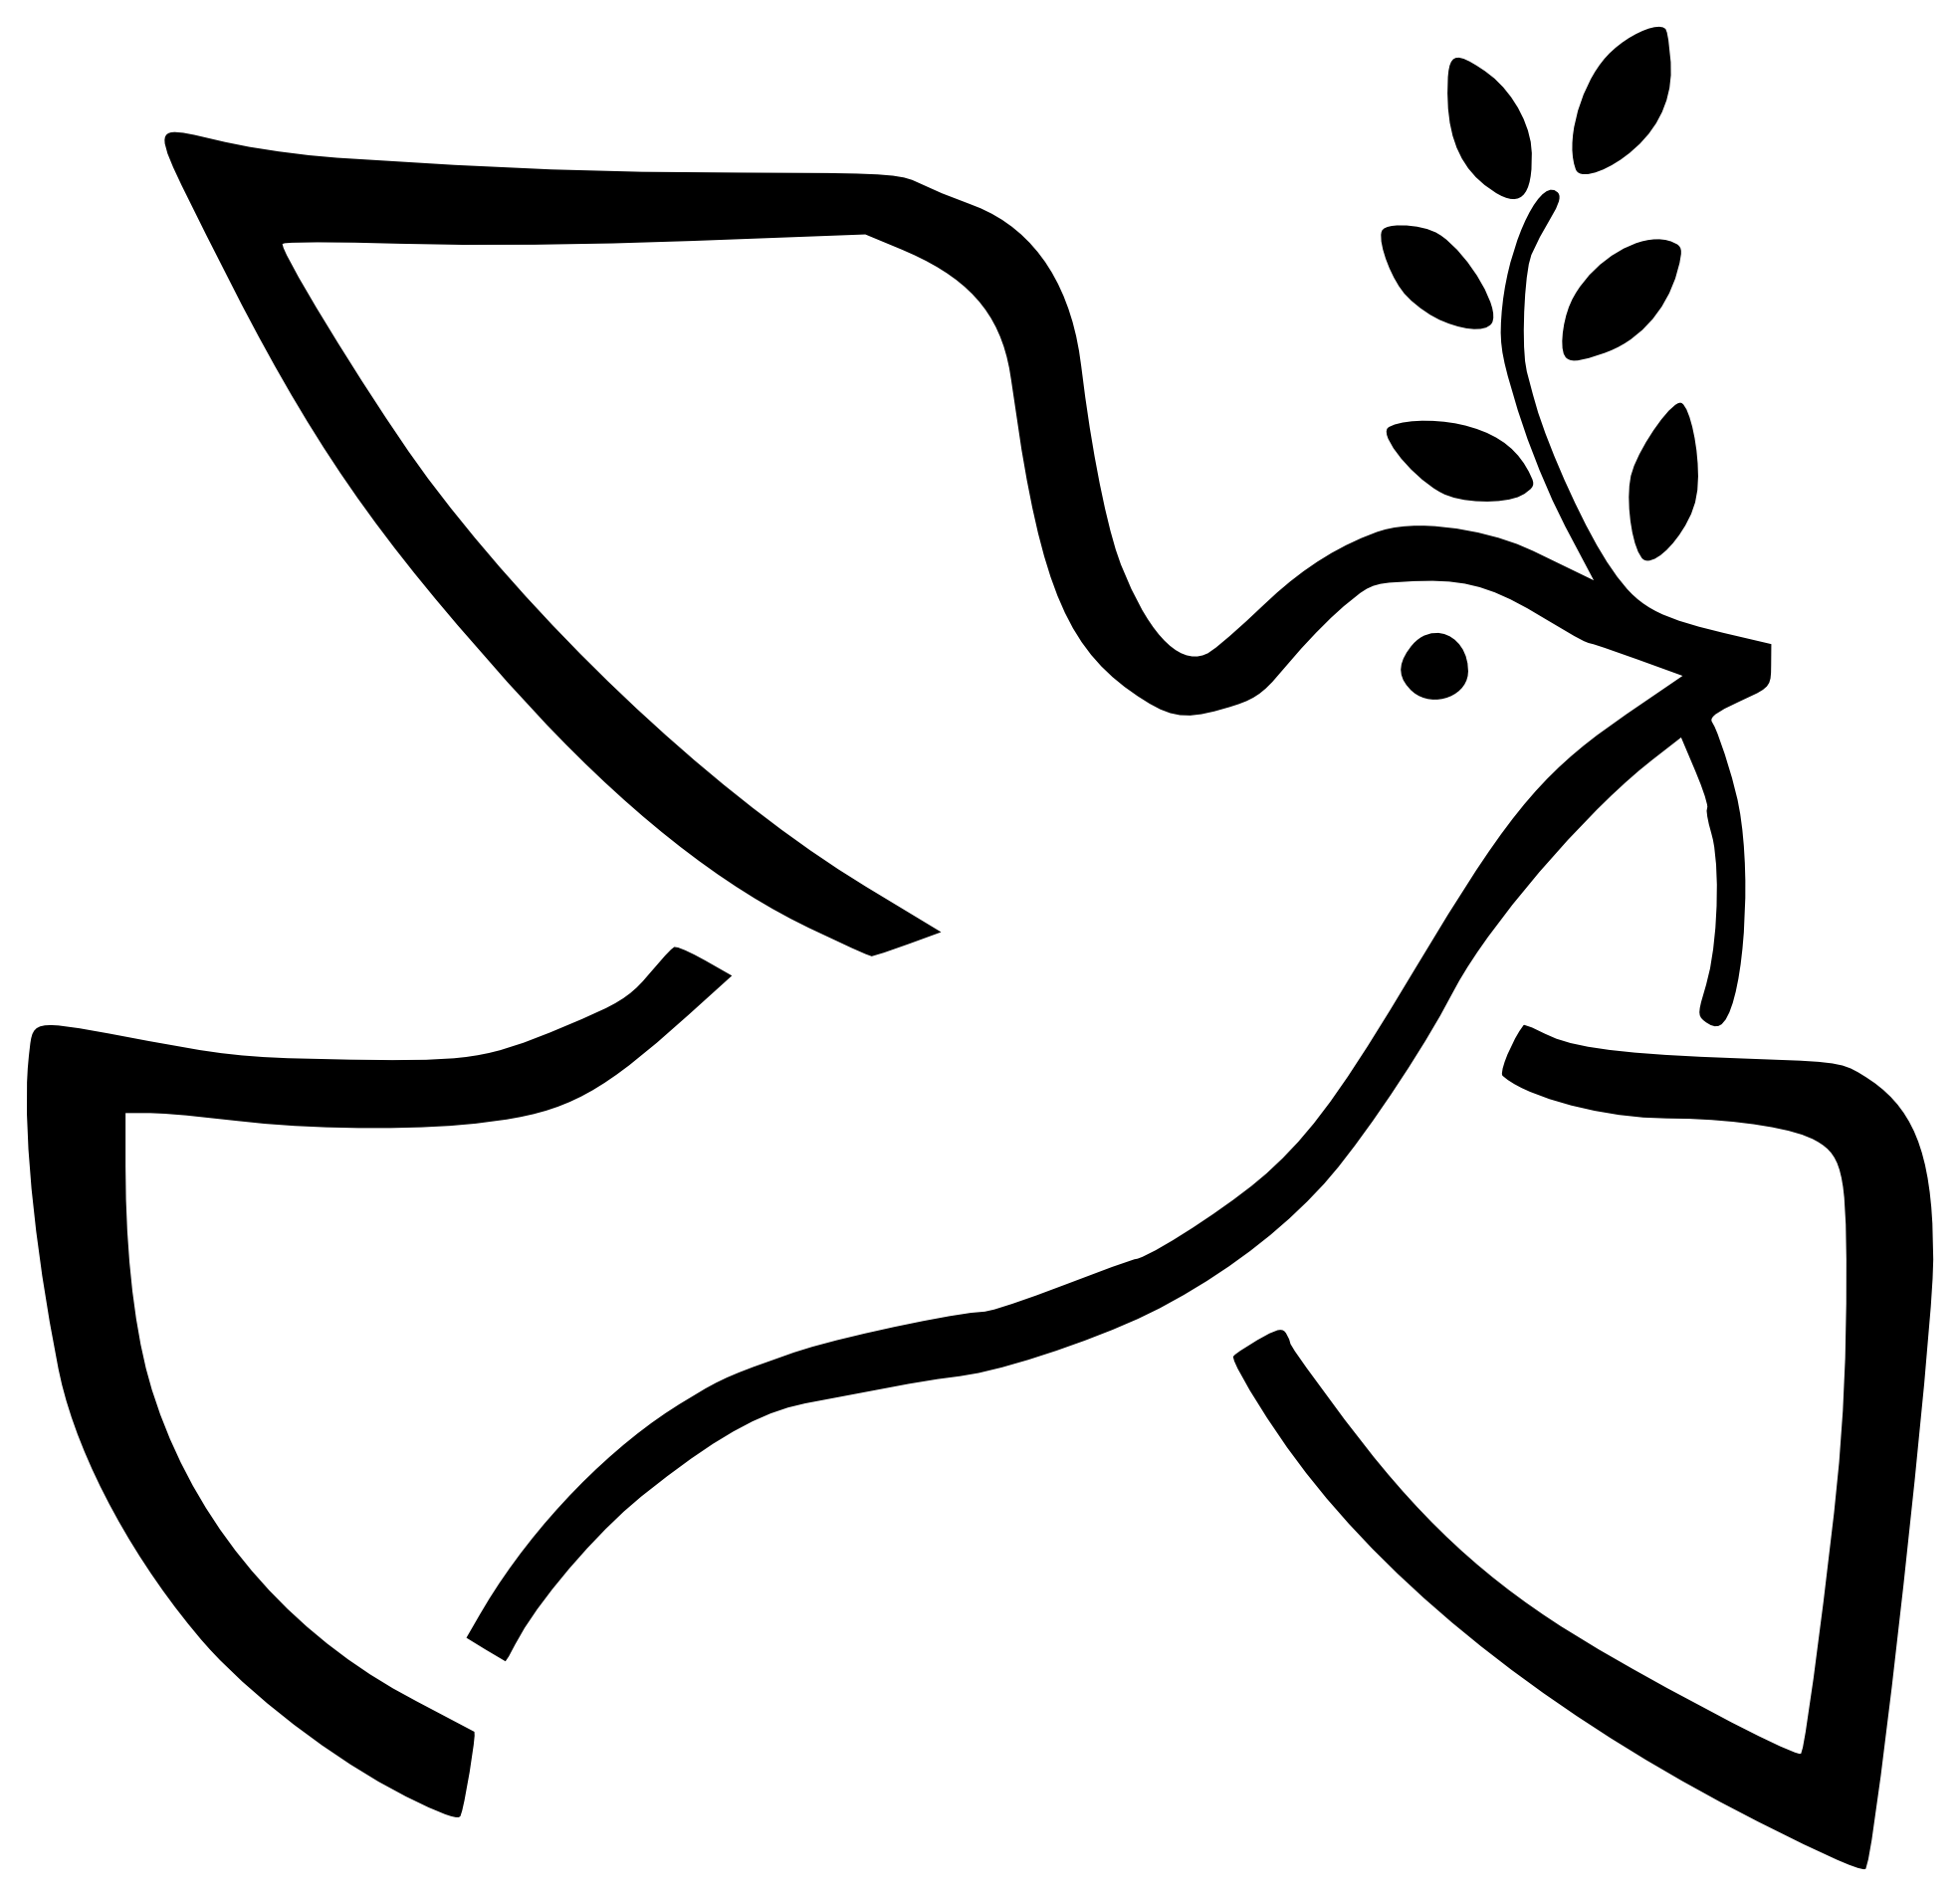 peace dove clipart clipart kid sunday school crafts pinterest rh pinterest co uk  free clipart peace dove